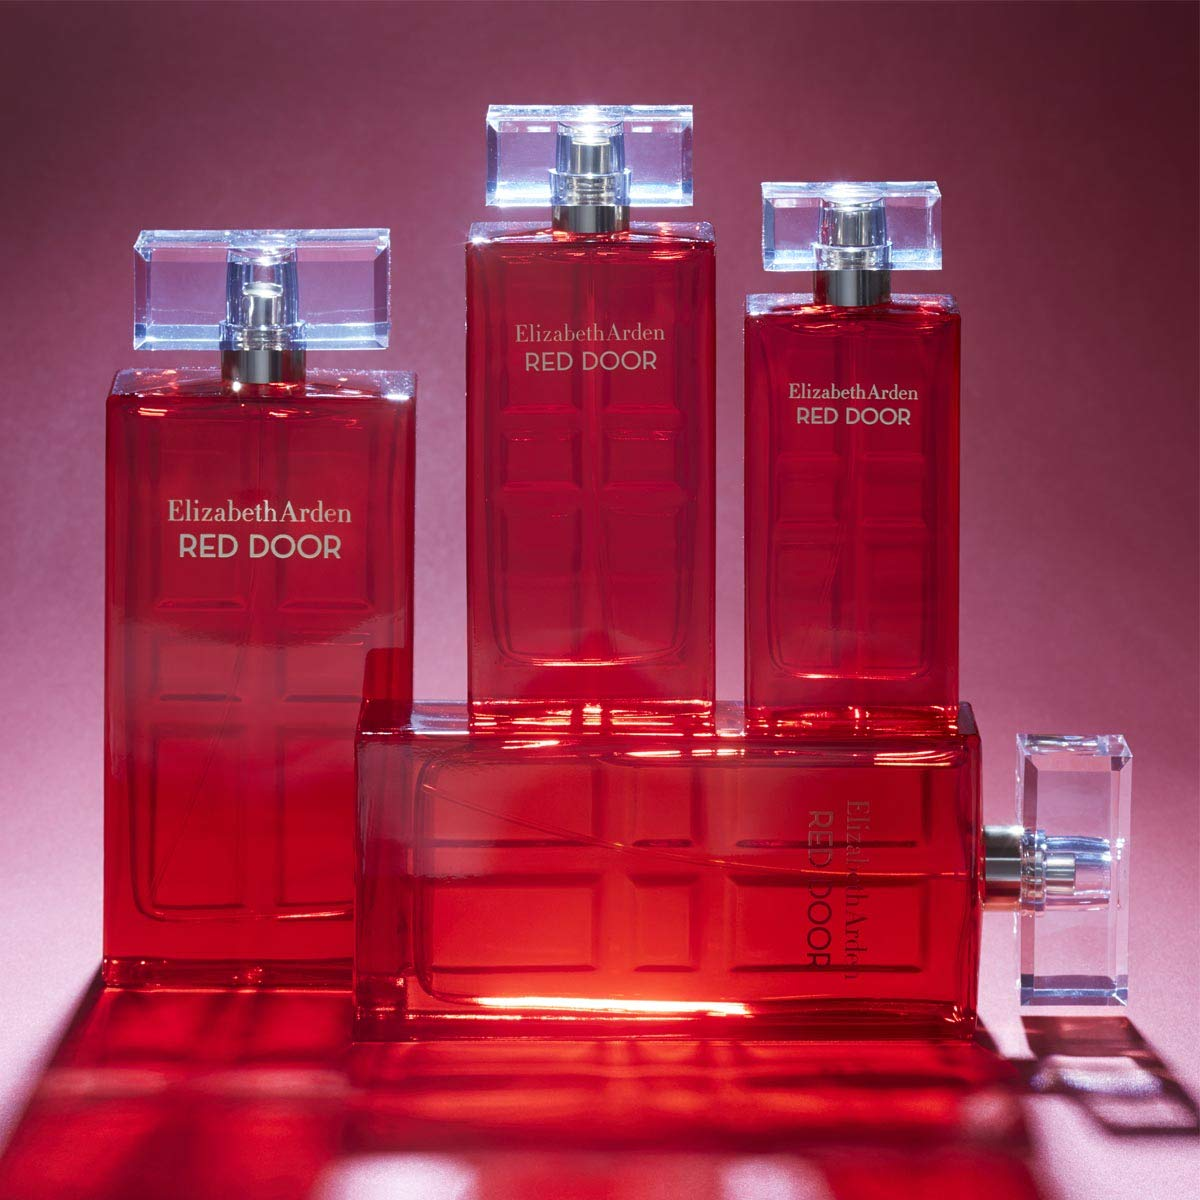 Elizabeth Arden Red Door Eau de Toilette Spray - 100 ml: Elizabeth Arden: Amazon.es: Belleza